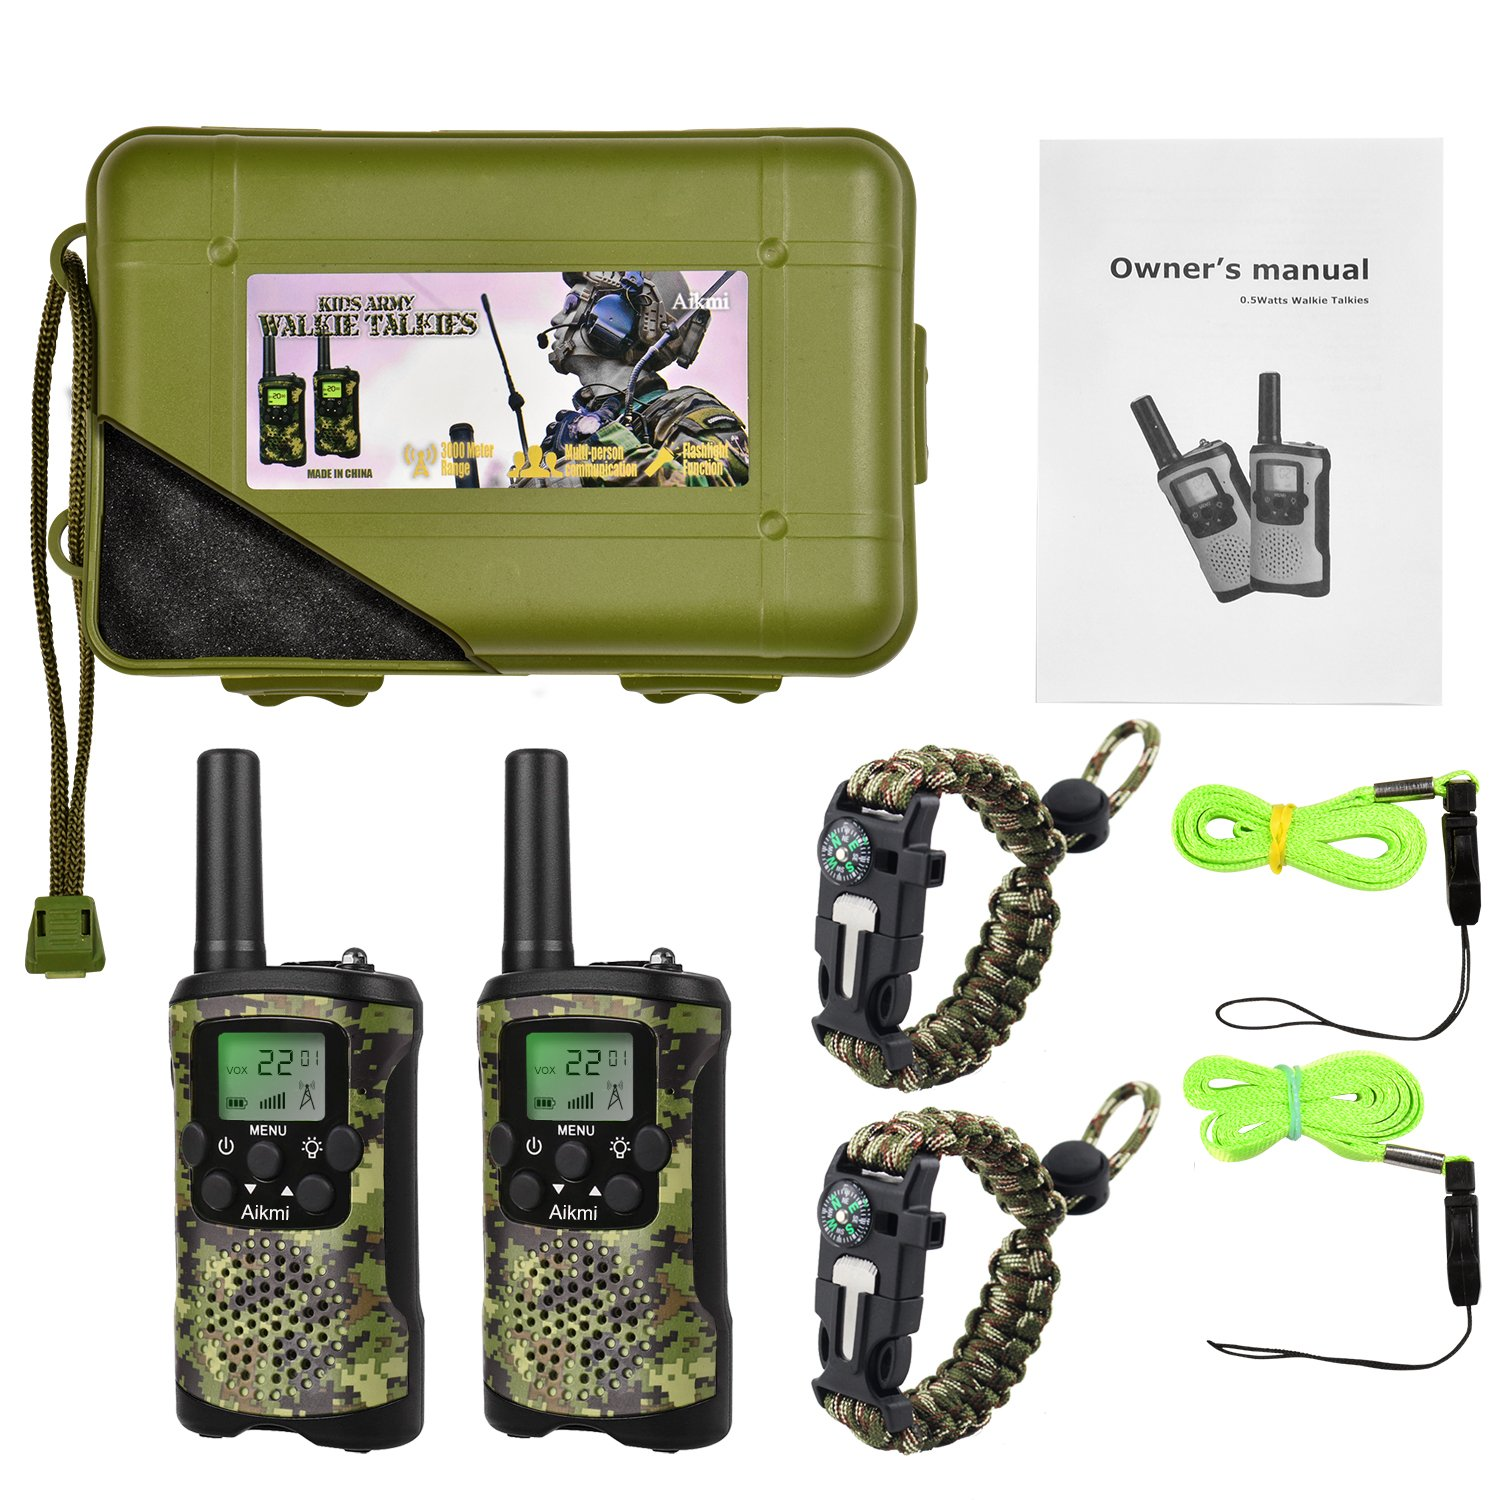 Walkie Talkies for Kids 22 Channel 2 Way Radio 3 Miles Long Range Handheld Walkie Talkies Durable Toy Best Birthday Gifts for 6 year old Boys and Girls fit Outdoor Adventure Game Camping (Green Camo) by Aikmi (Image #7)